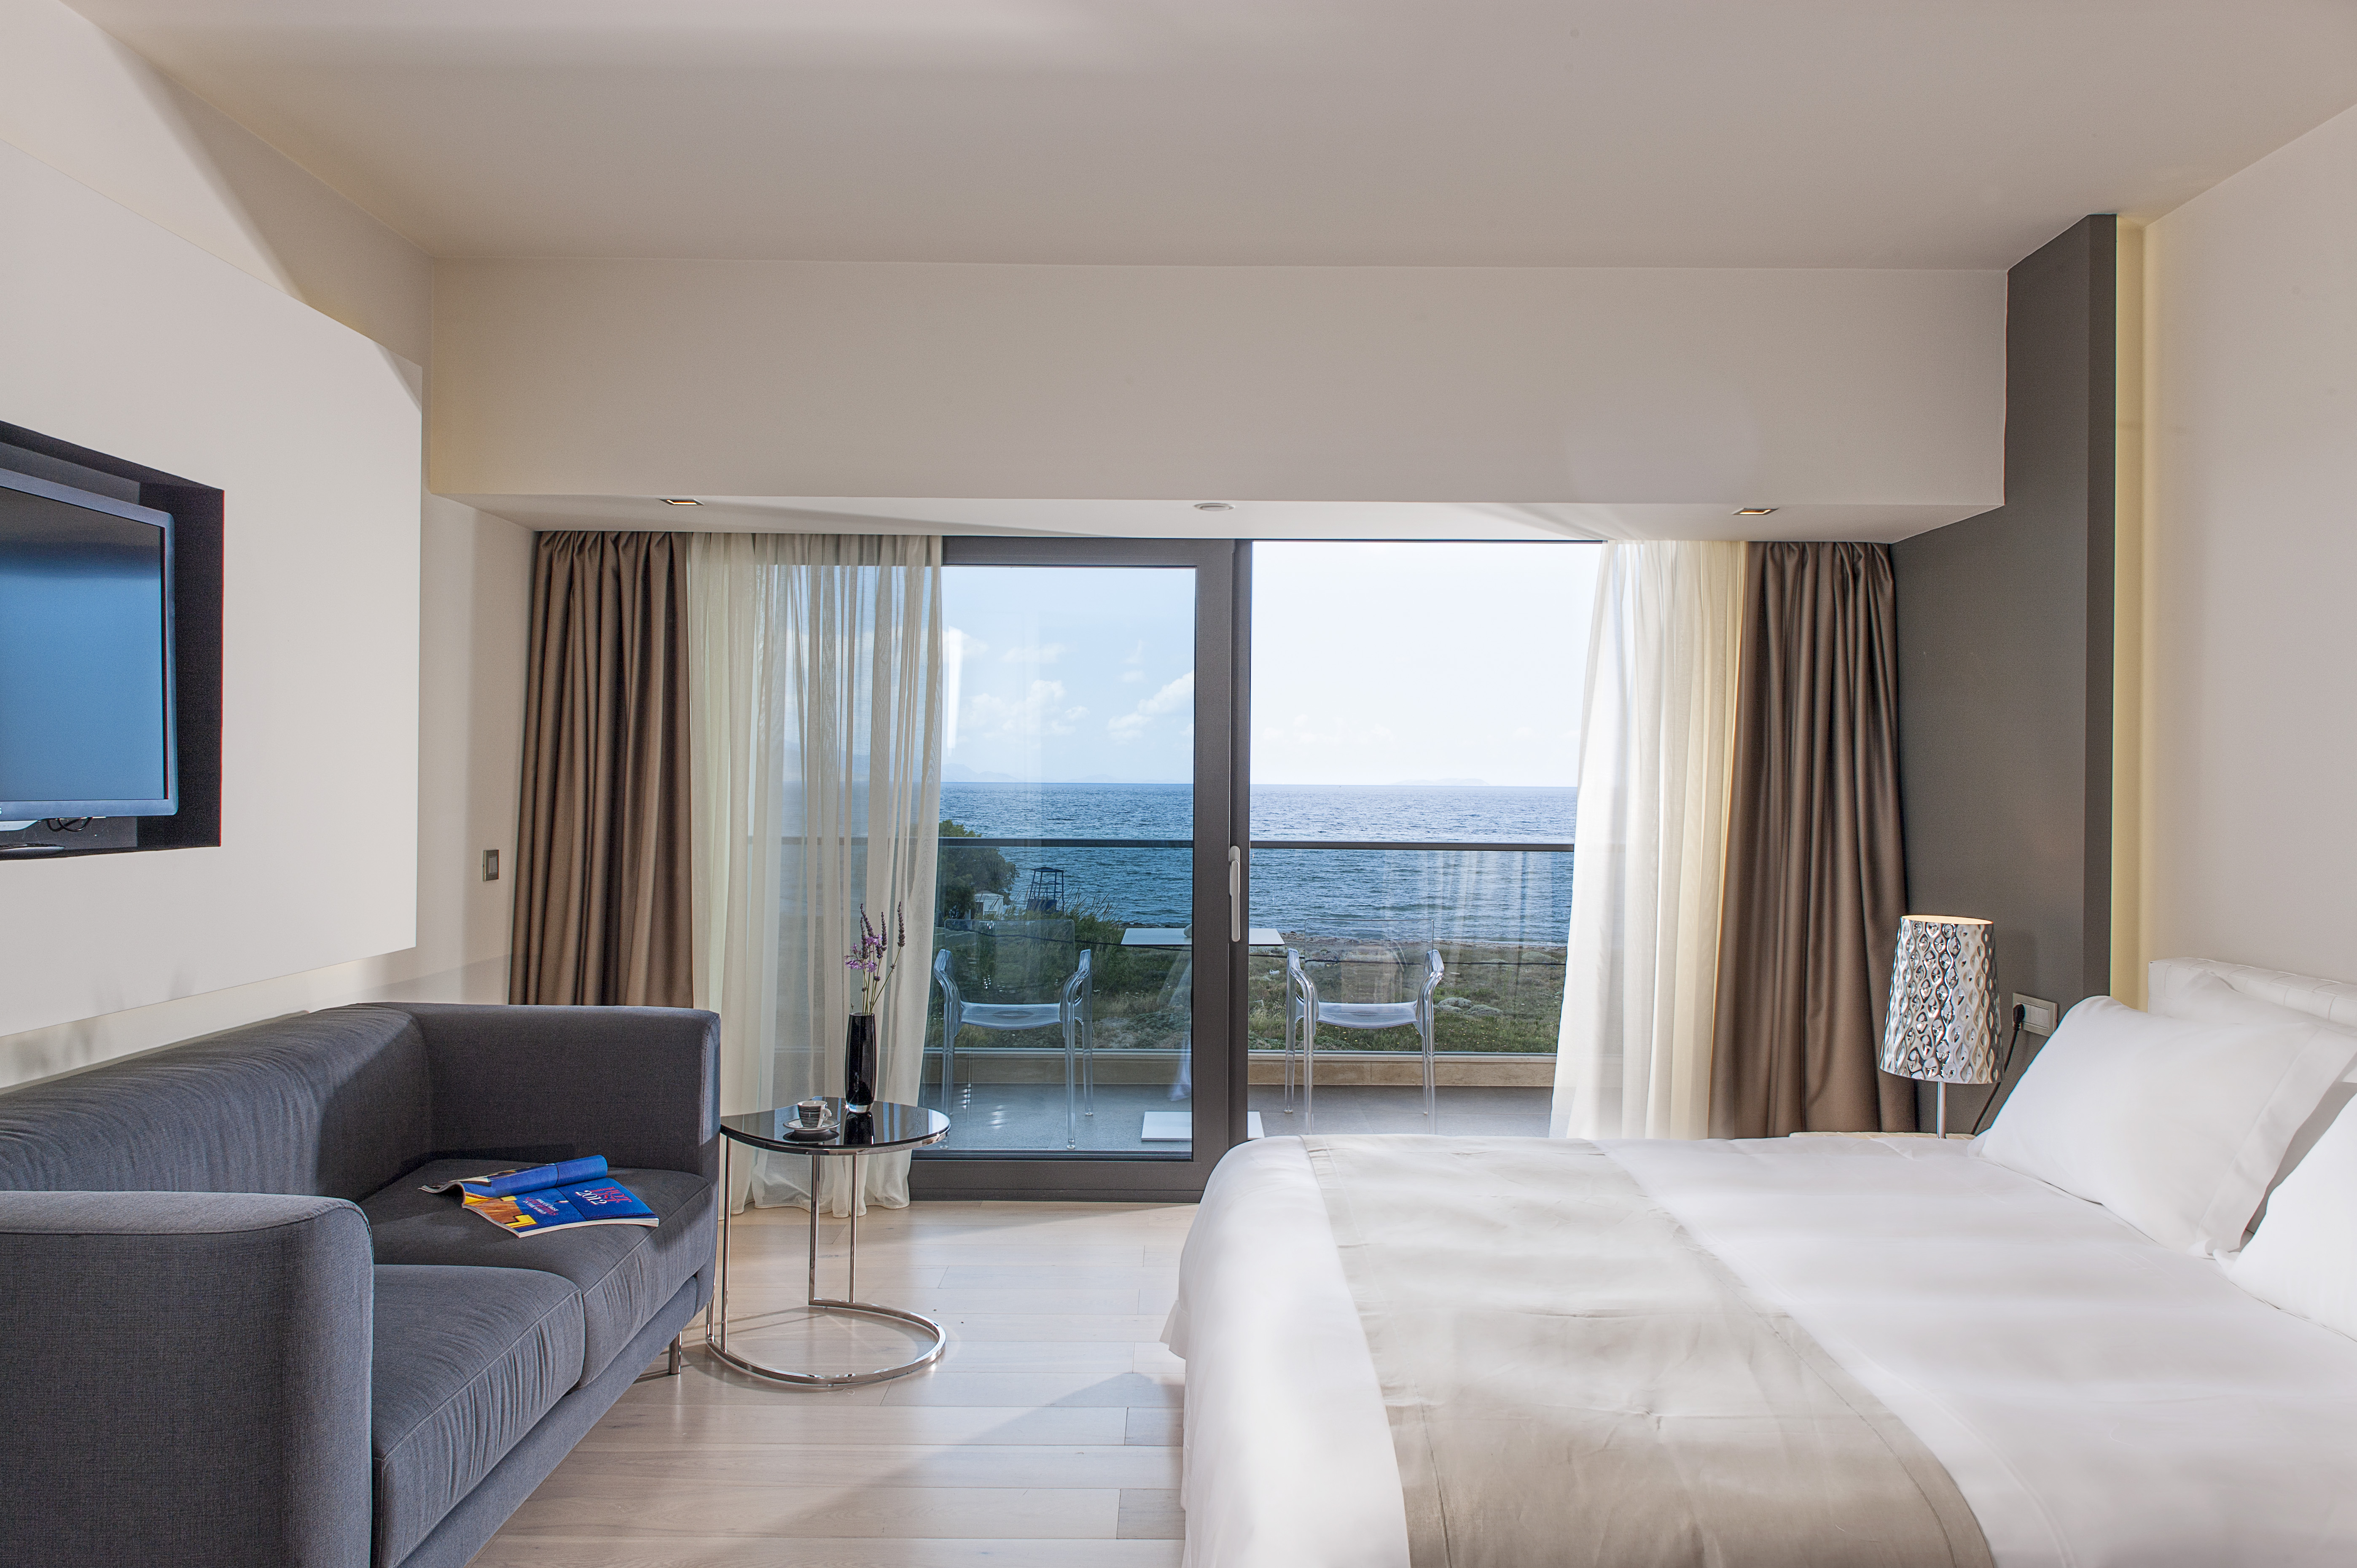 Aqua blu boutique hotel spa luxury hotel in kos greece for Design hotel kos